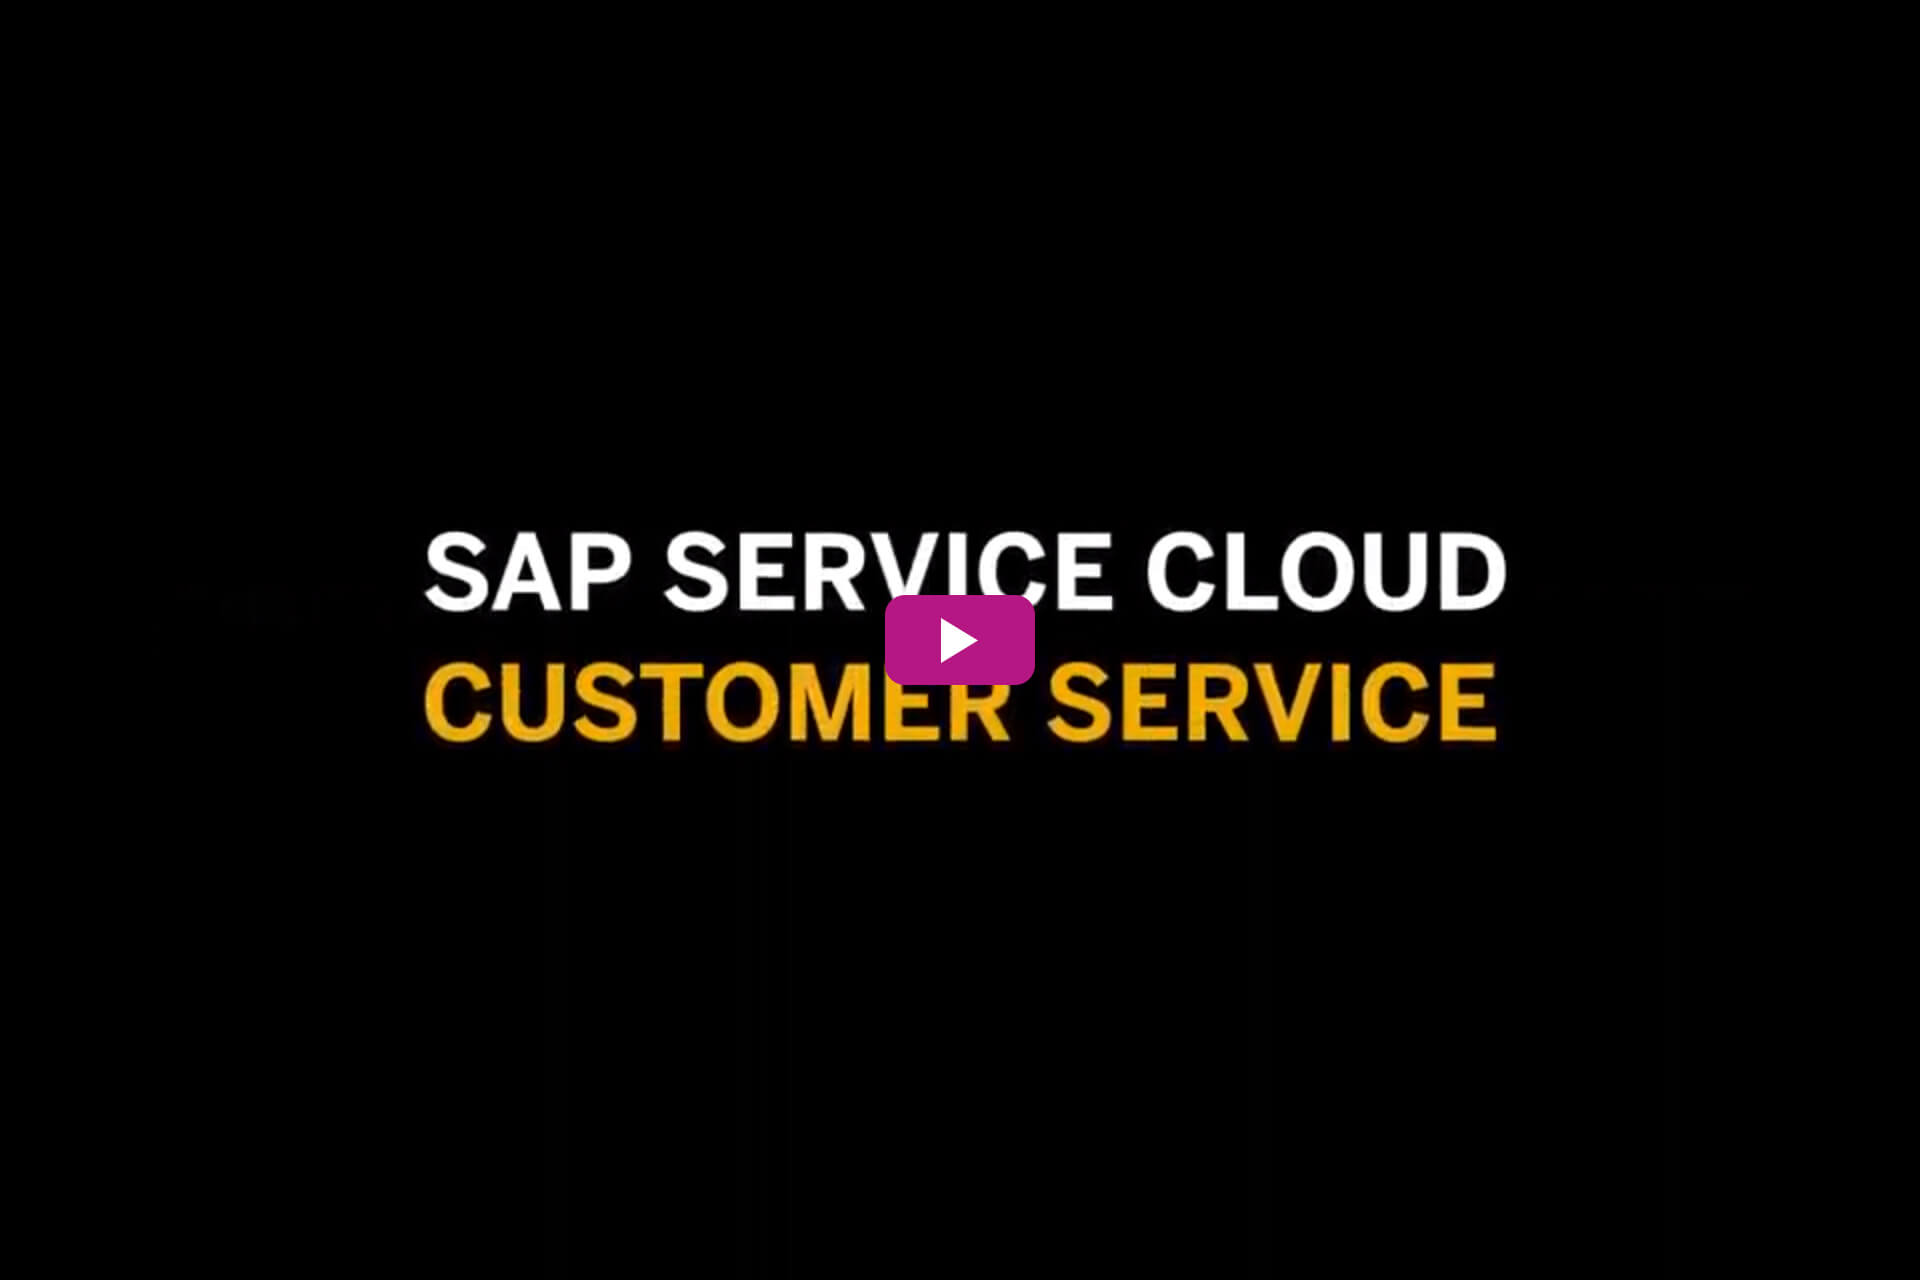 Vorschaubild für das Video Service Cloud - Customer Service